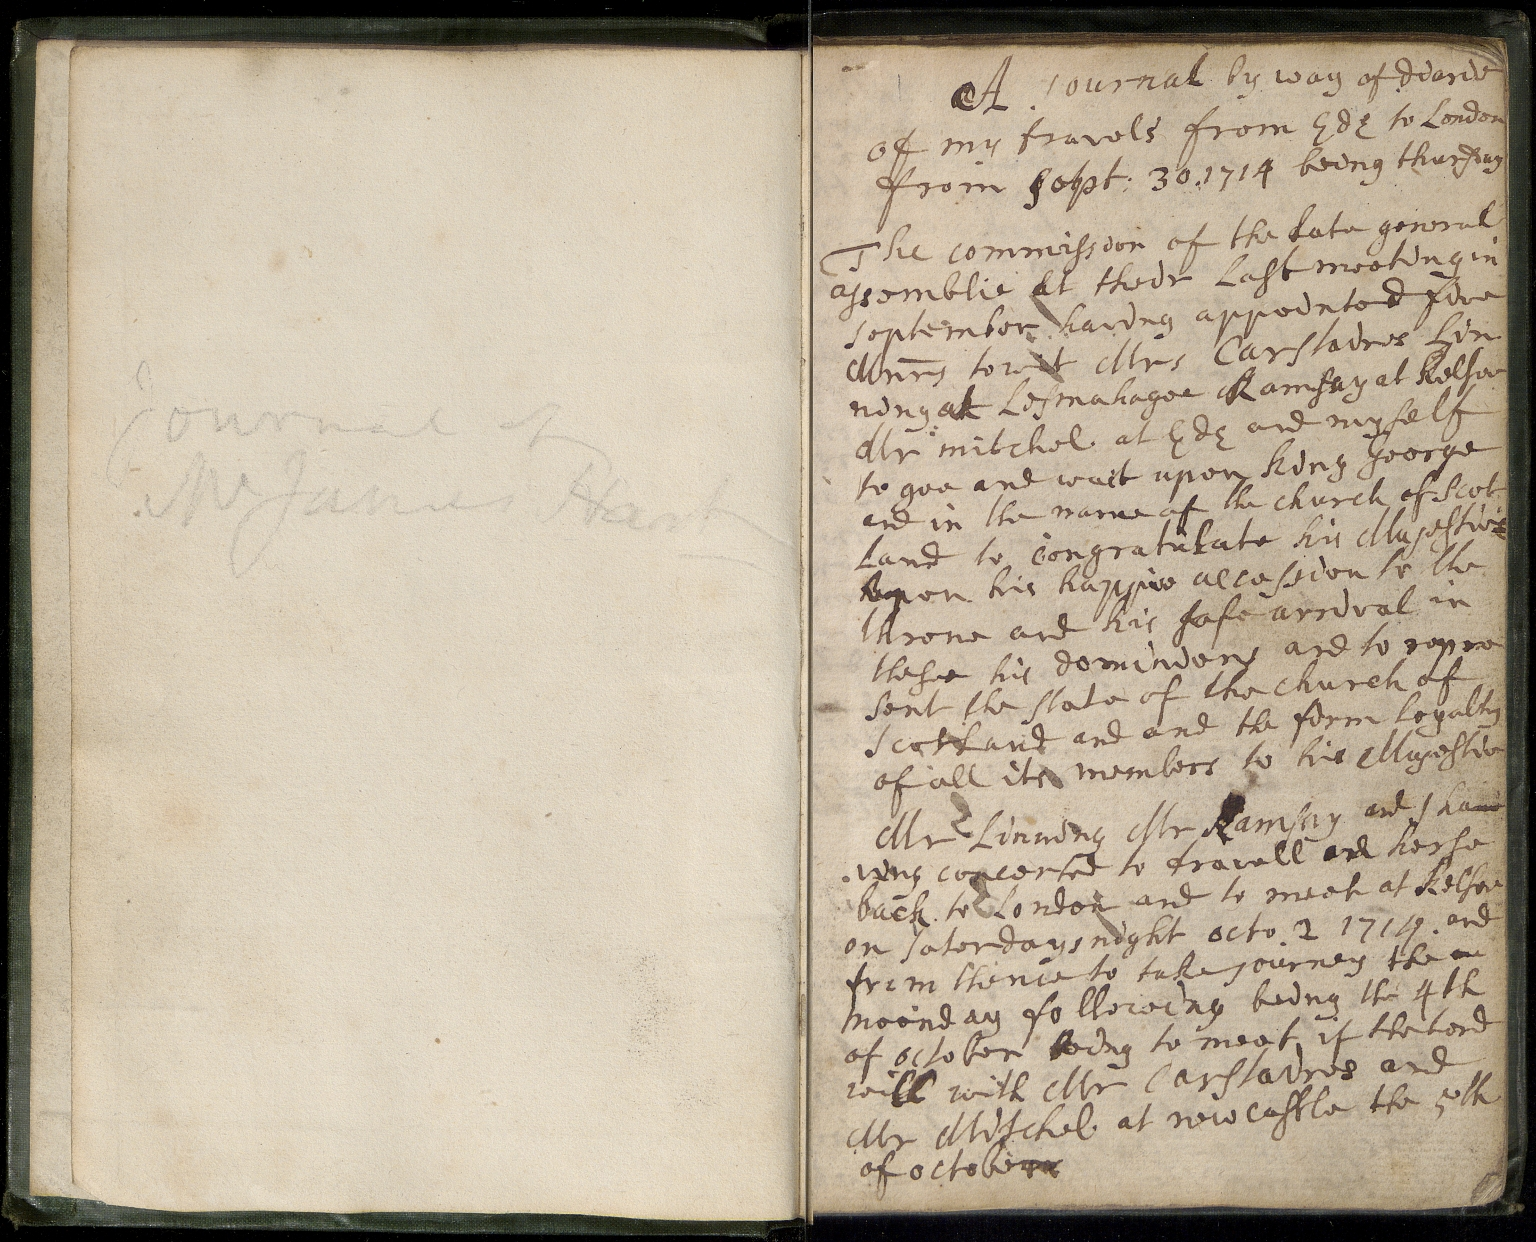 Journal of Mr James Hart, p.01